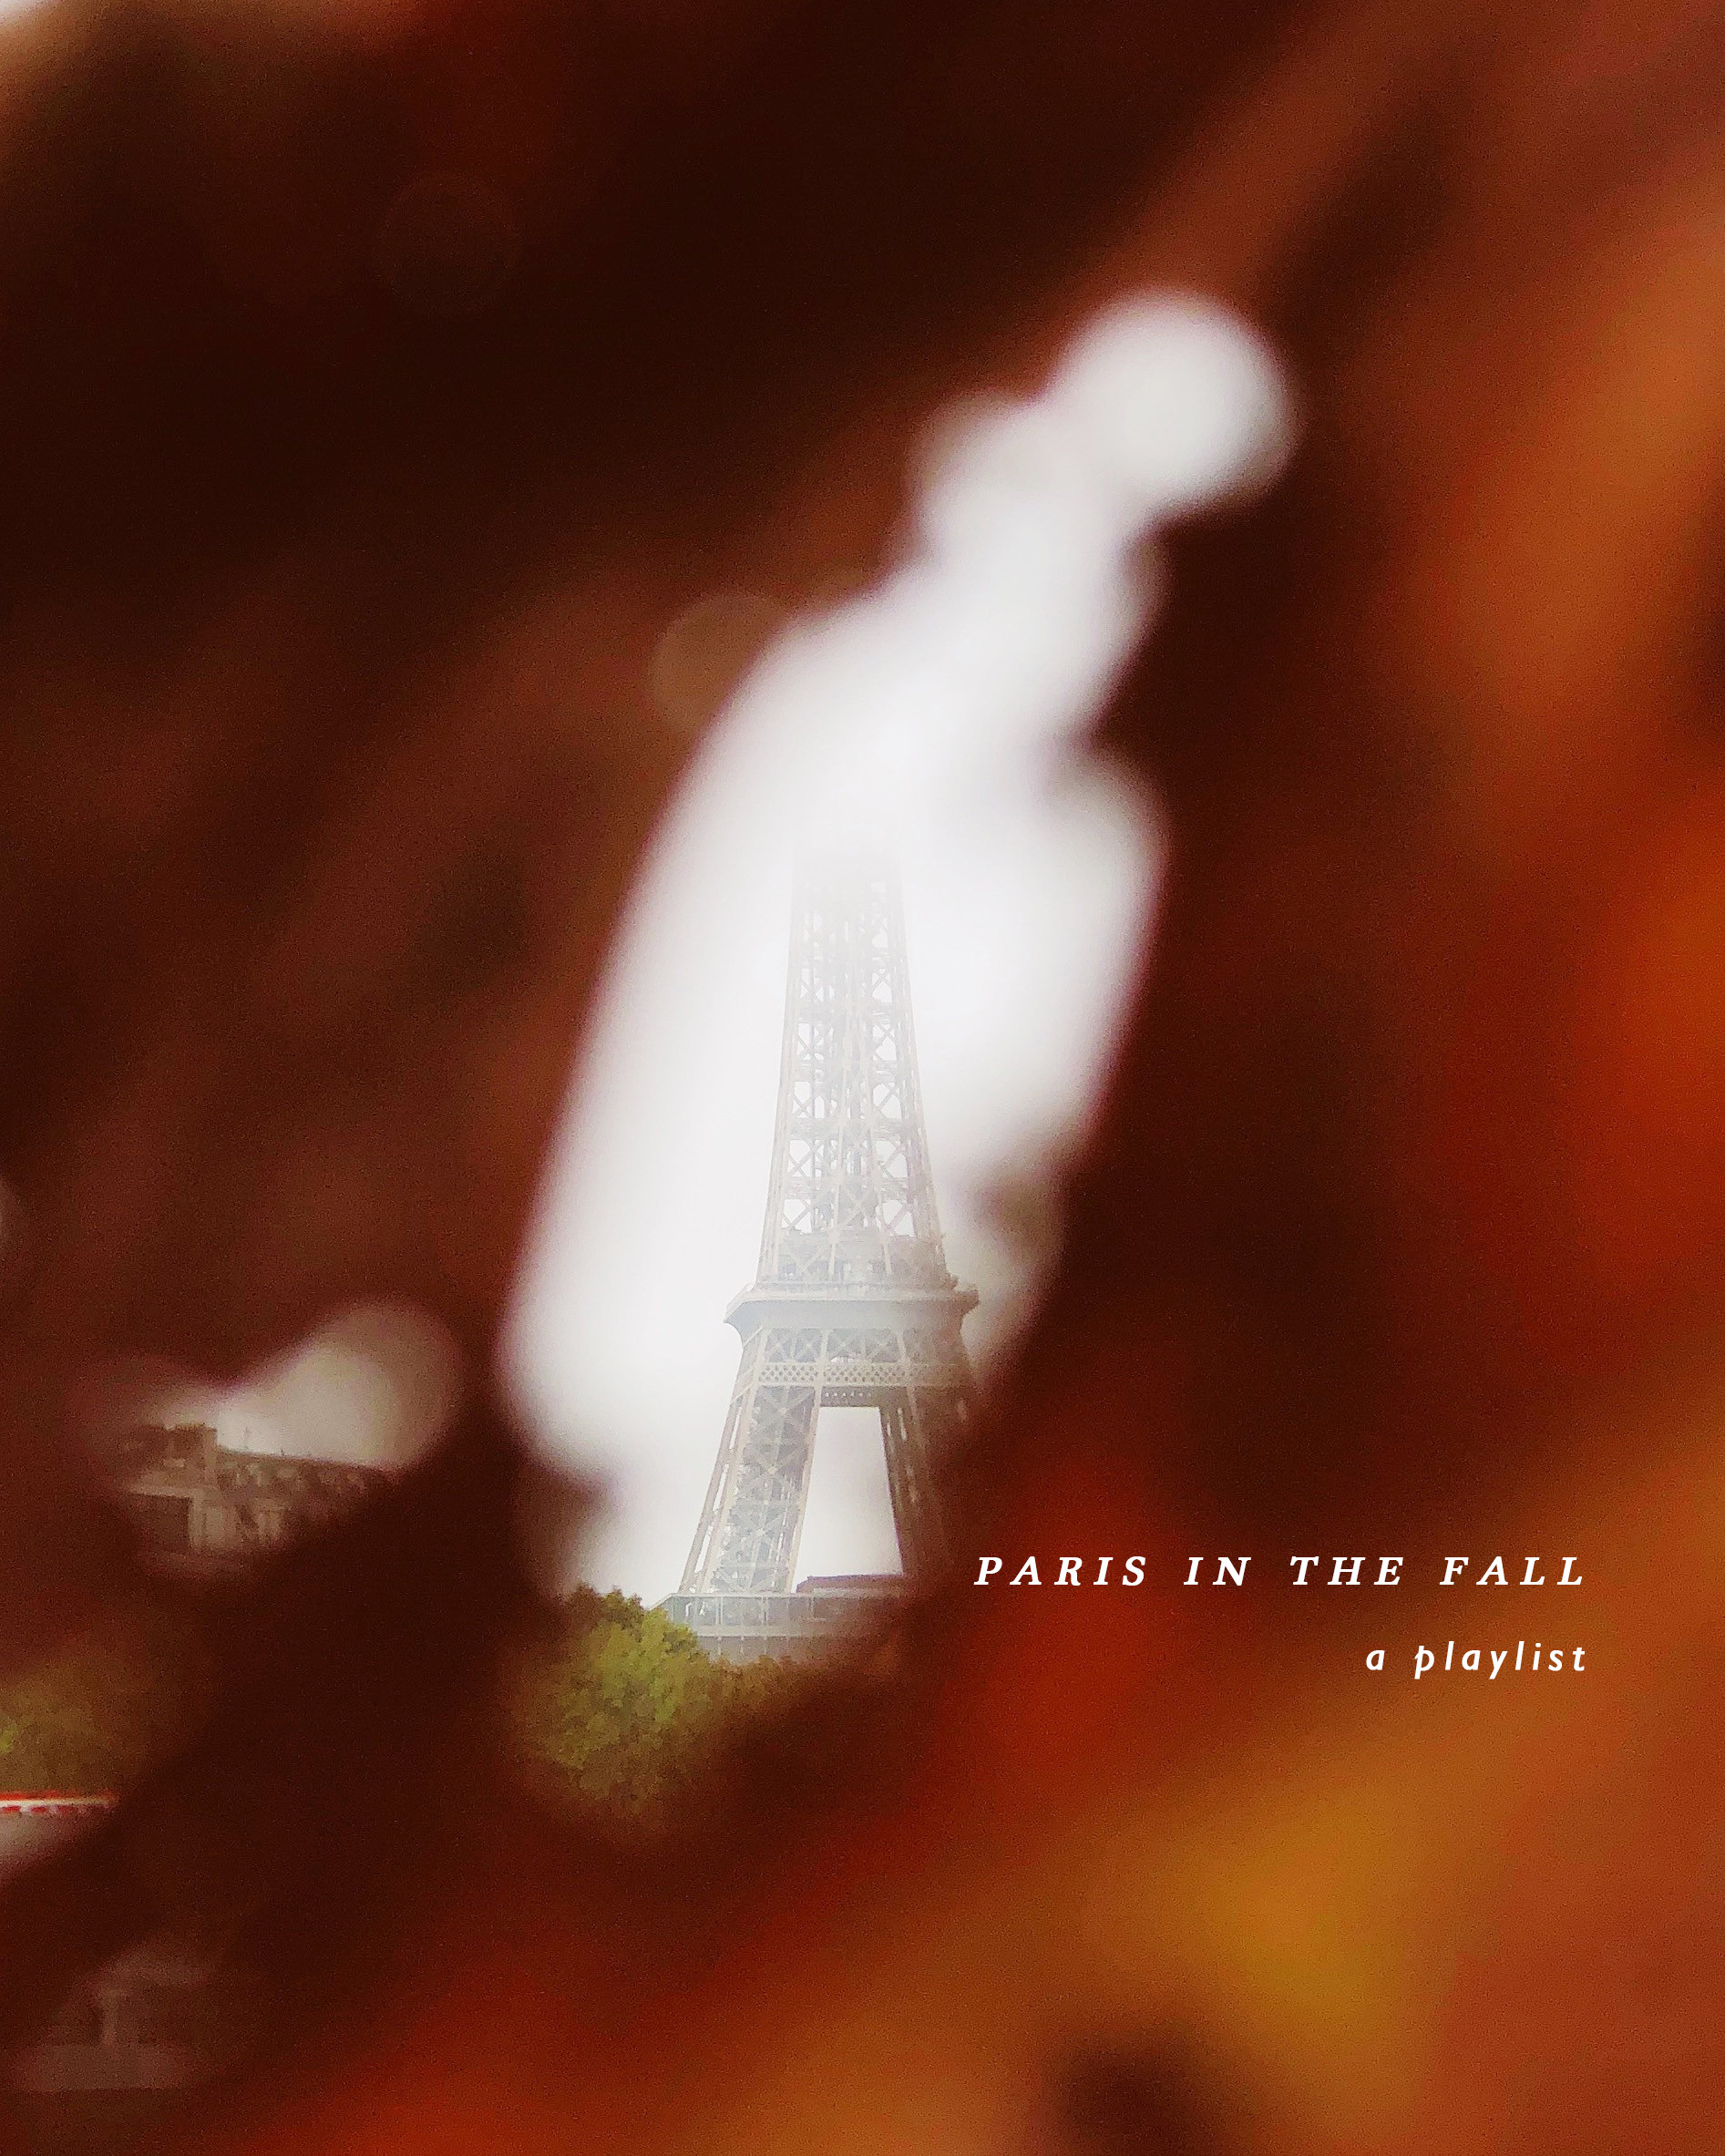 paris in the fall, a playlist